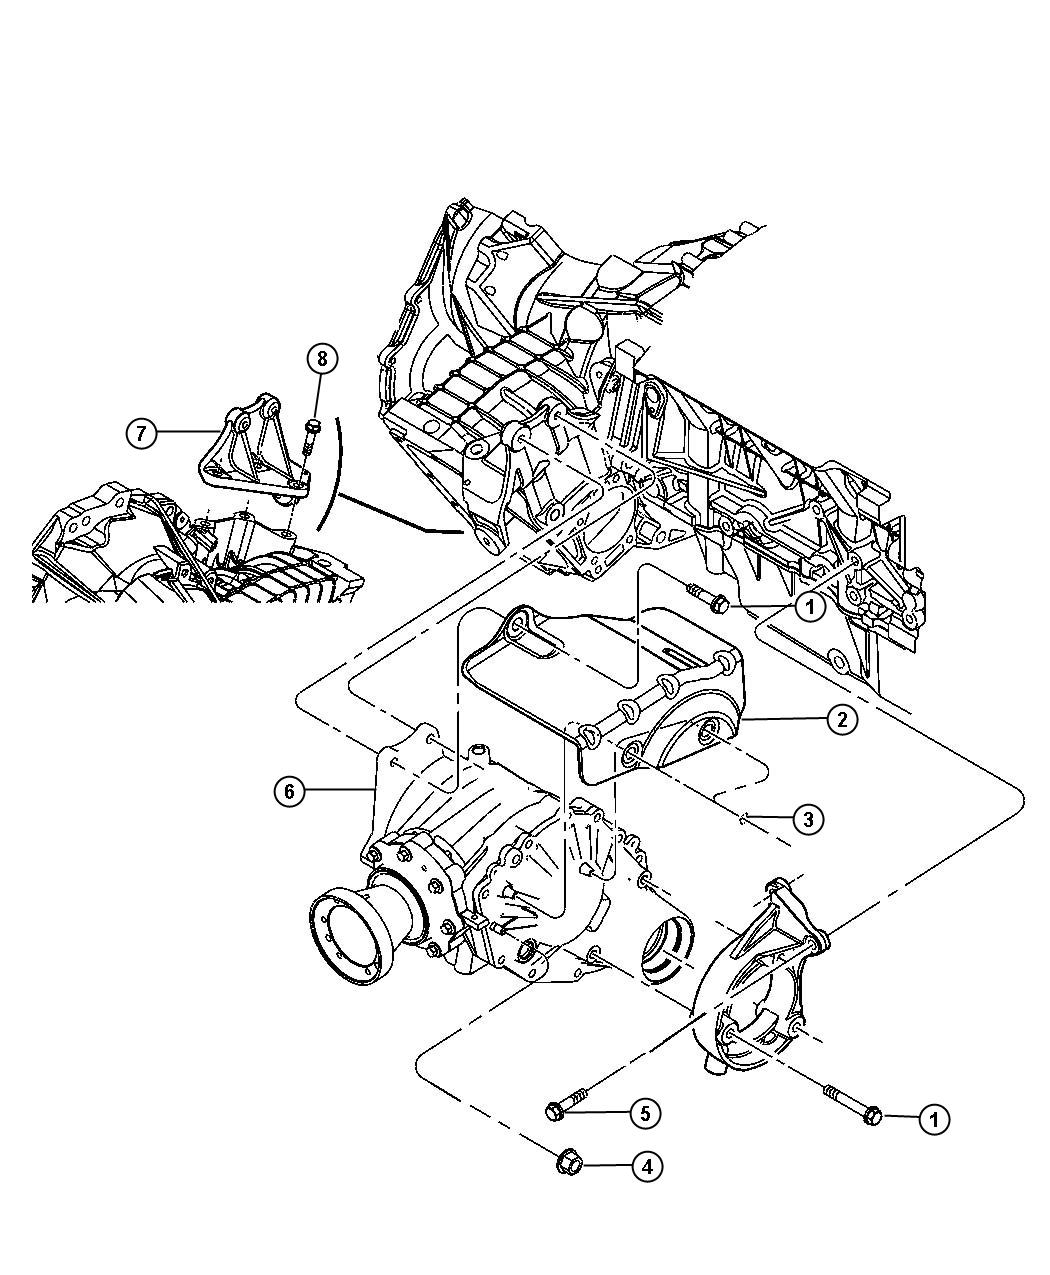 T9290350 Subaru 97 speed sensor trouble also RepairGuideContent additionally Saturn Vue 2005 2007 Fuse Box Diagram in addition 77mac Magnum 2005 Dodge Magnum 5 7 Hemi Dtc Code 07e8 Engine 07e9 A T additionally 2007 Chrysler Pacifica Specs. on chrysler pacifica awd